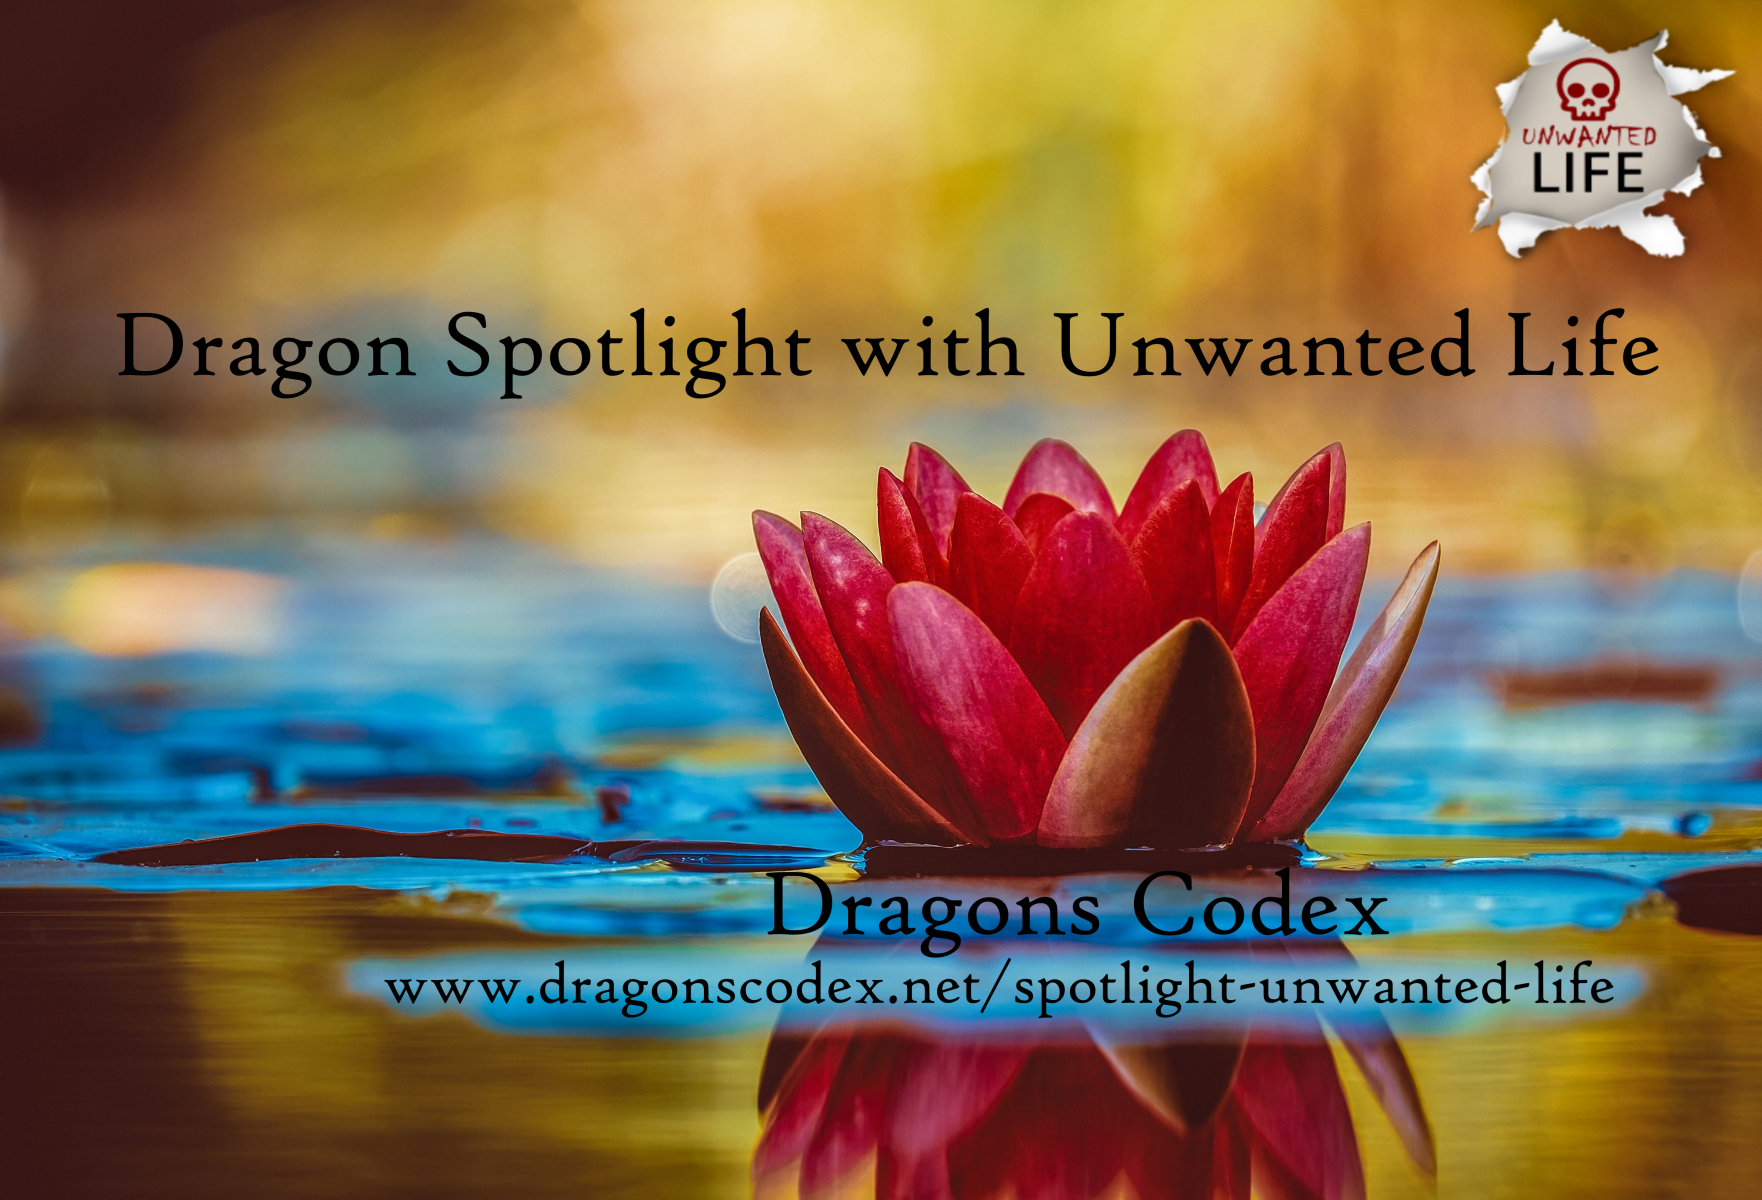 Dragon Spotlight with Unwanted Life